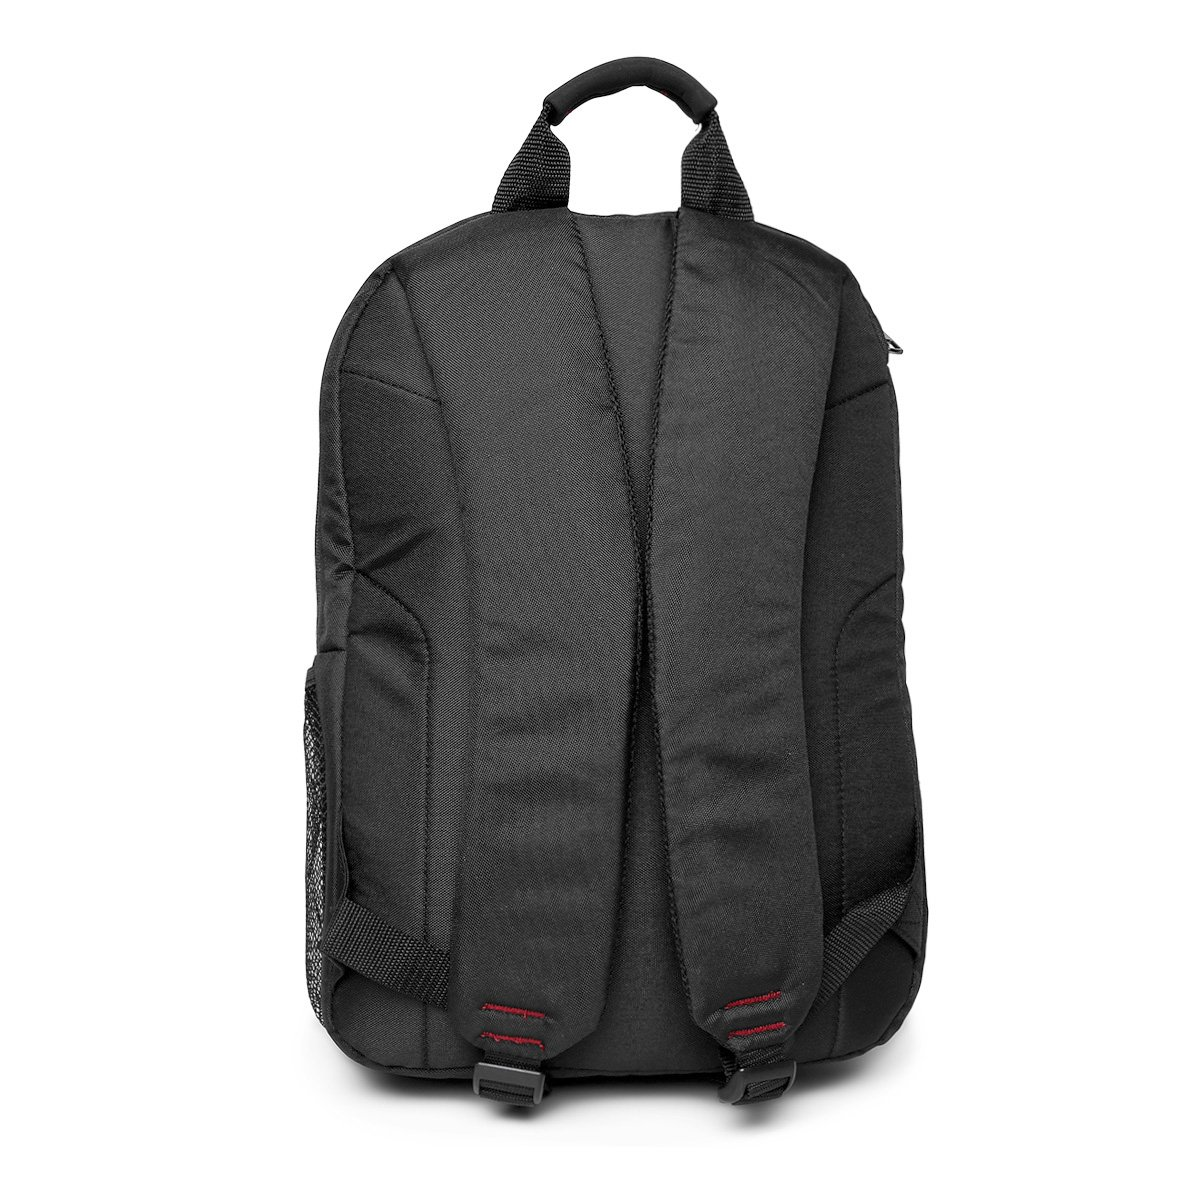 Mochila Samsonite para Notebook Guard IT Preto - 22